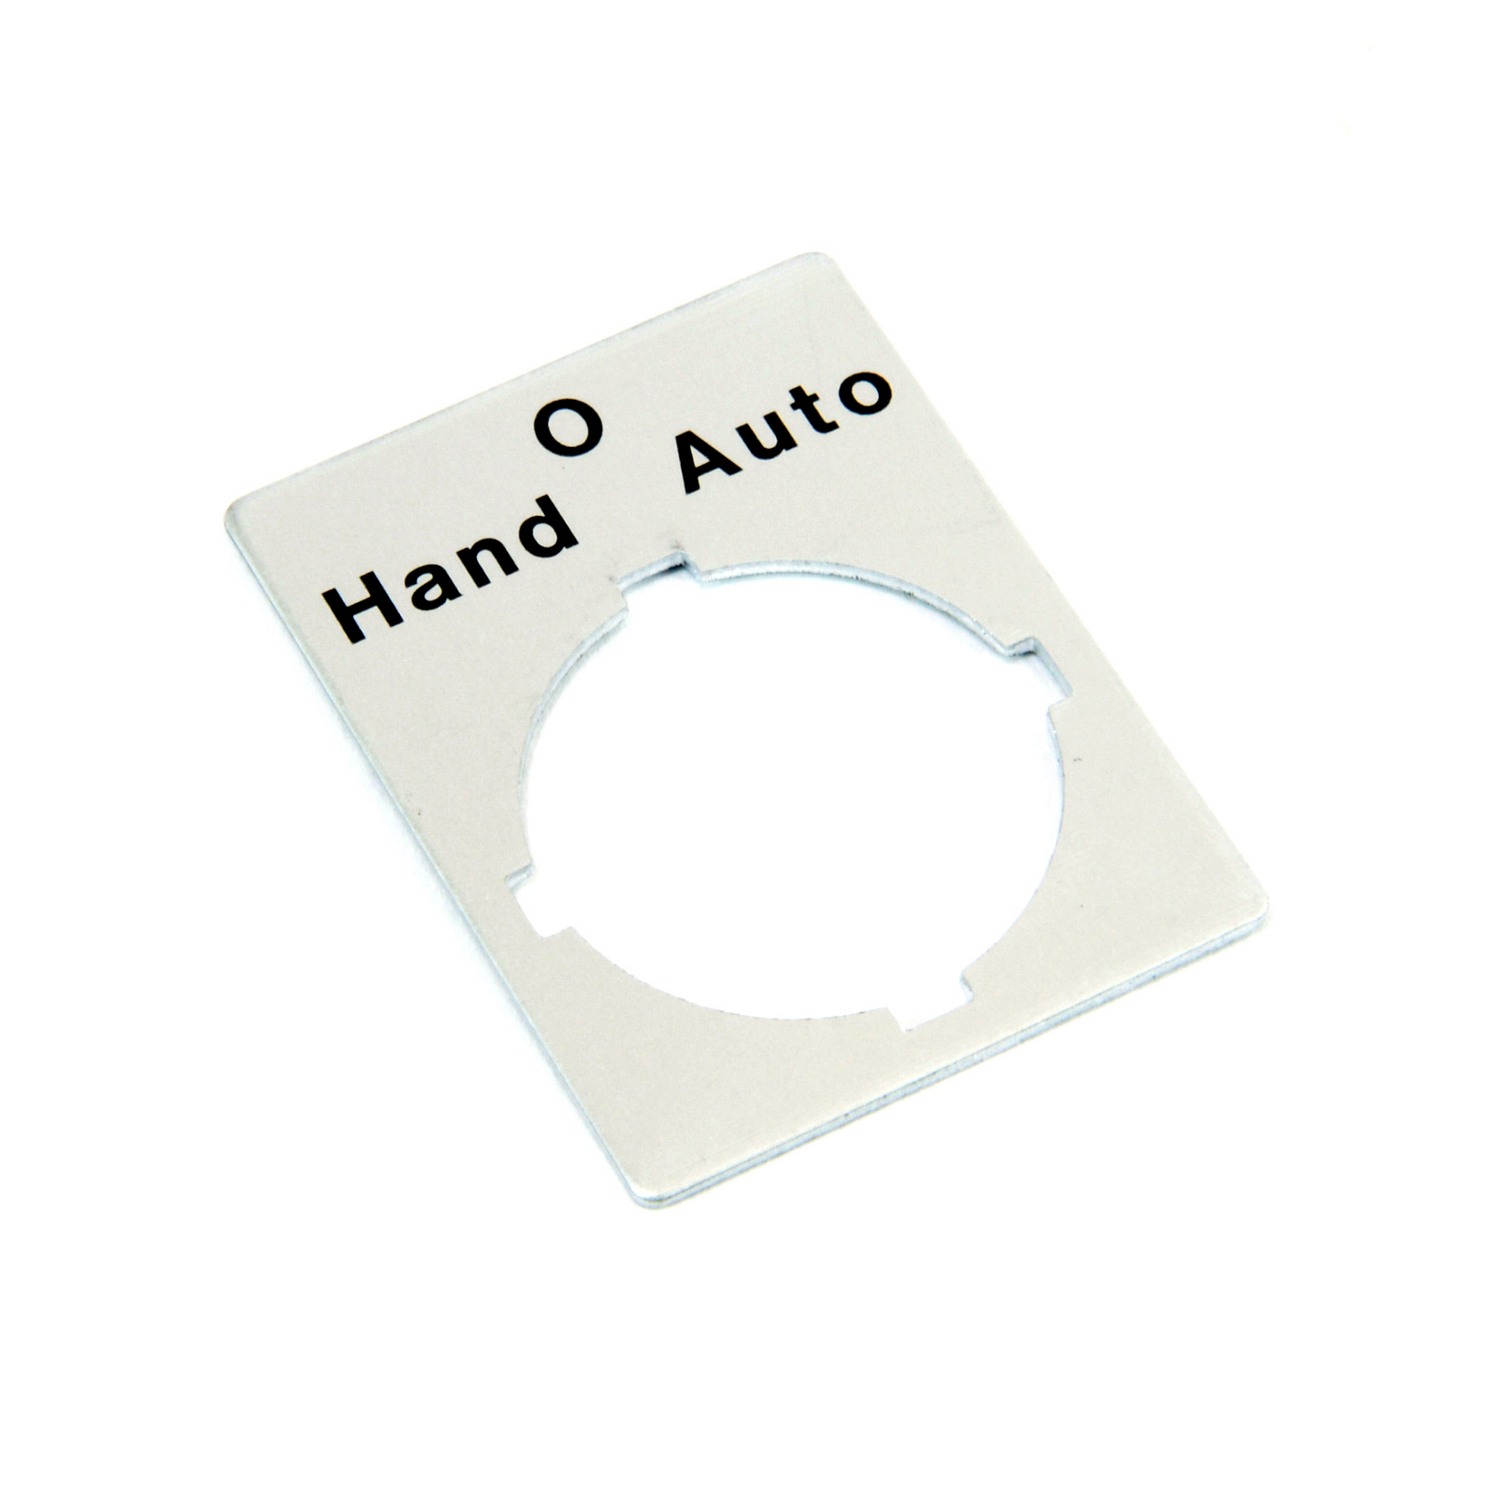 ABB SK615550-80 HAND/OFF/AUTO NAME PLATE - LEGEND